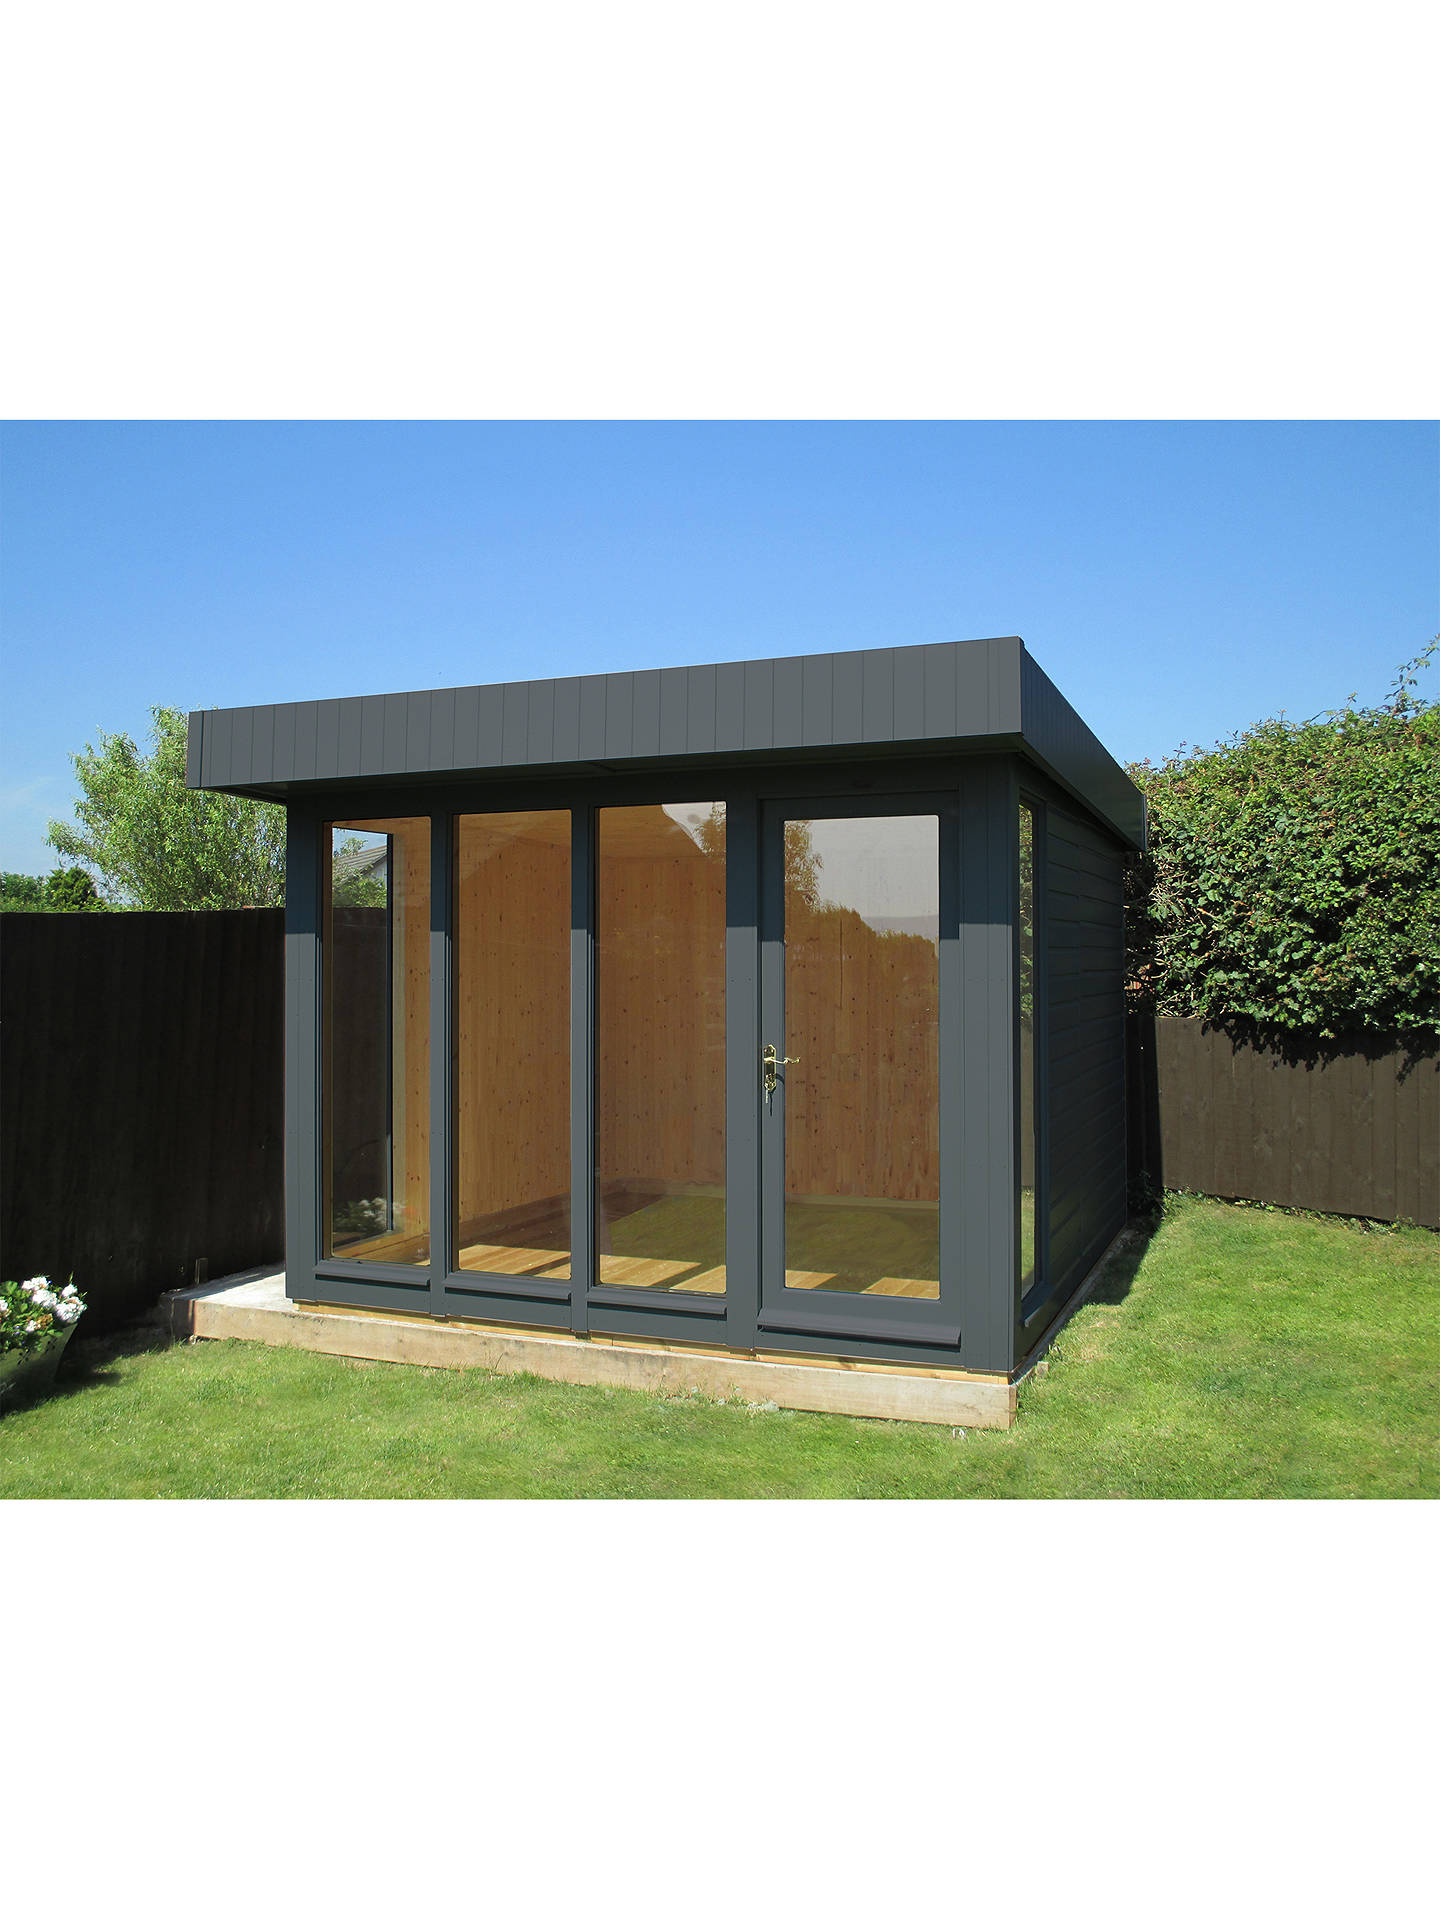 Buy Crane Garden Buildings 3 x 3m Garden Studio, FSC-Certified (Scandinavian Redwood), Shale Online at johnlewis.com